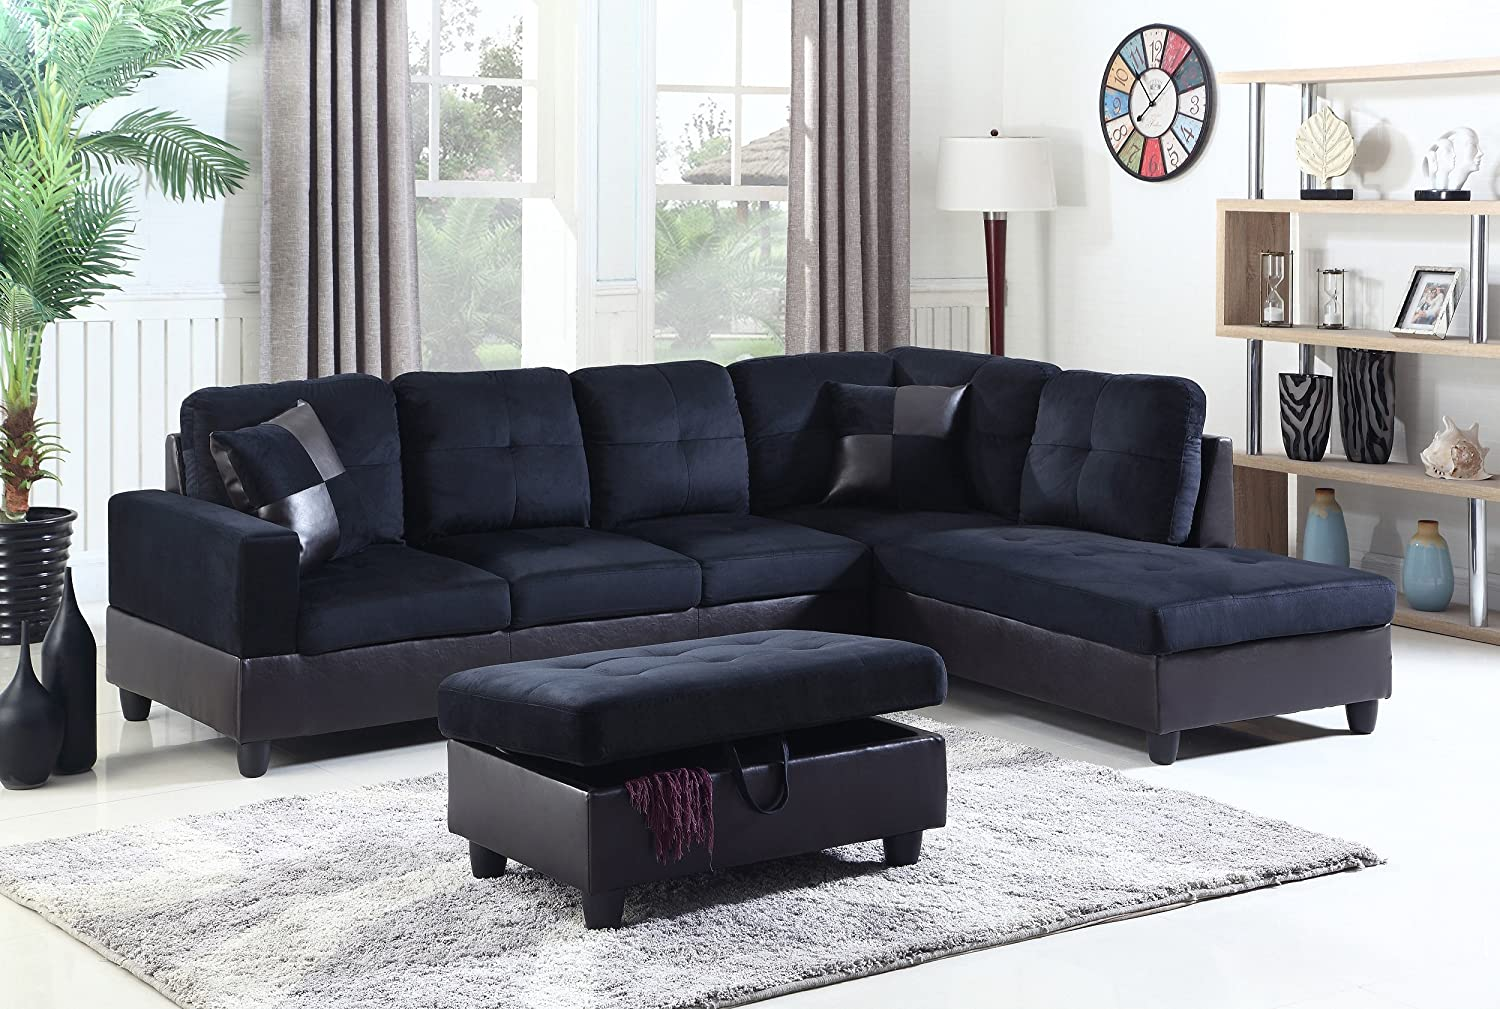 Admirable Amazon Com Lifestyle 3 Piece Diana Right Facing Sectional Beatyapartments Chair Design Images Beatyapartmentscom